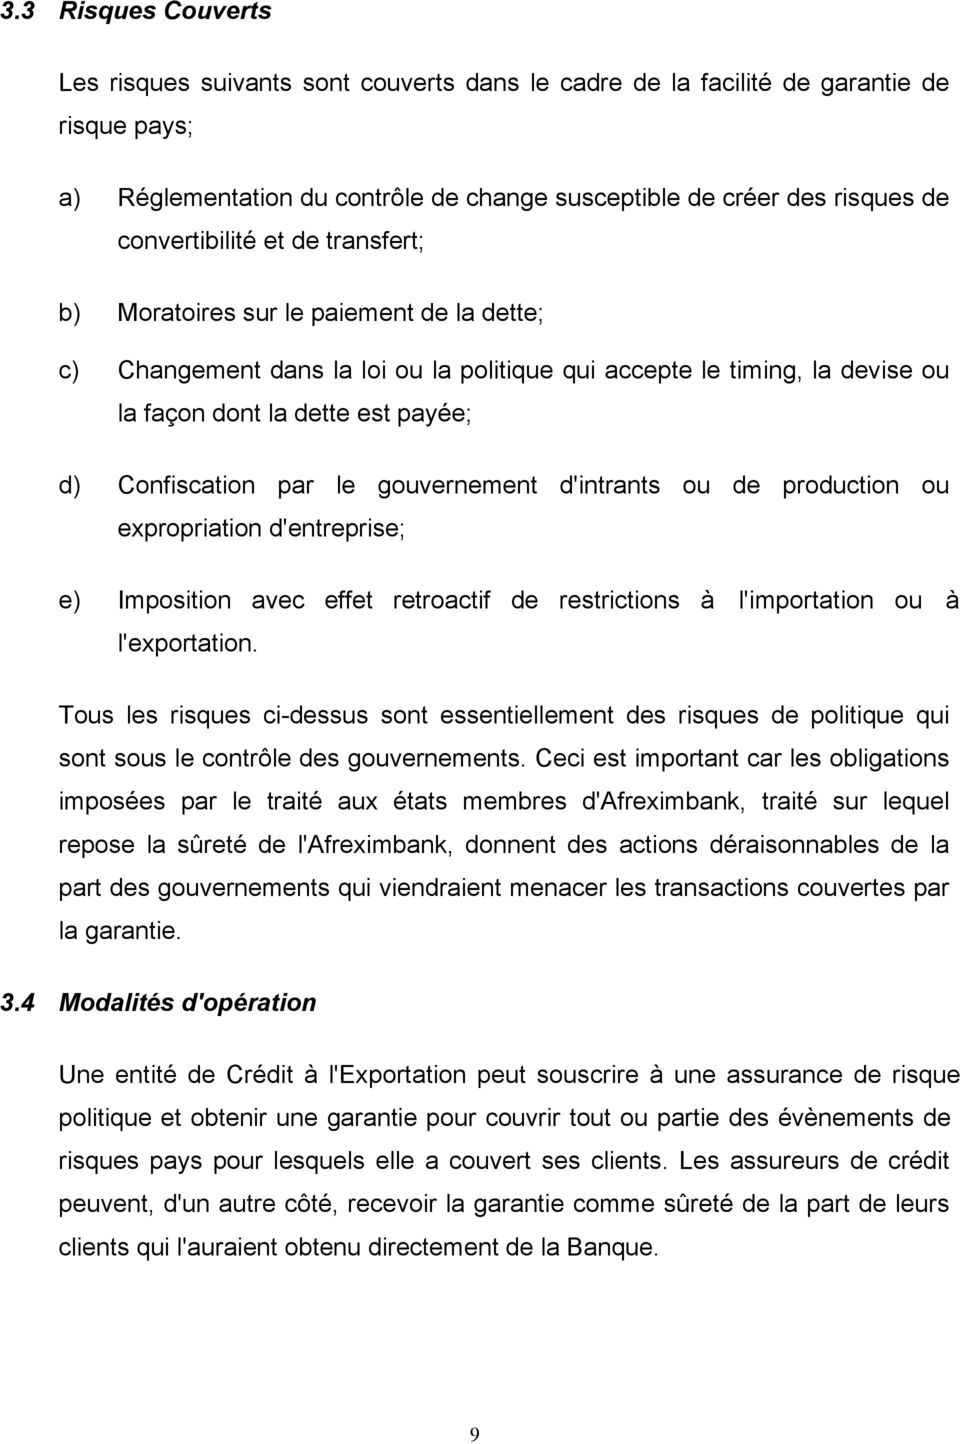 Confiscation par le gouvernement d'intrants ou de production ou expropriation d'entreprise; e) Imposition avec effet retroactif de restrictions à l'importation ou à l'exportation.